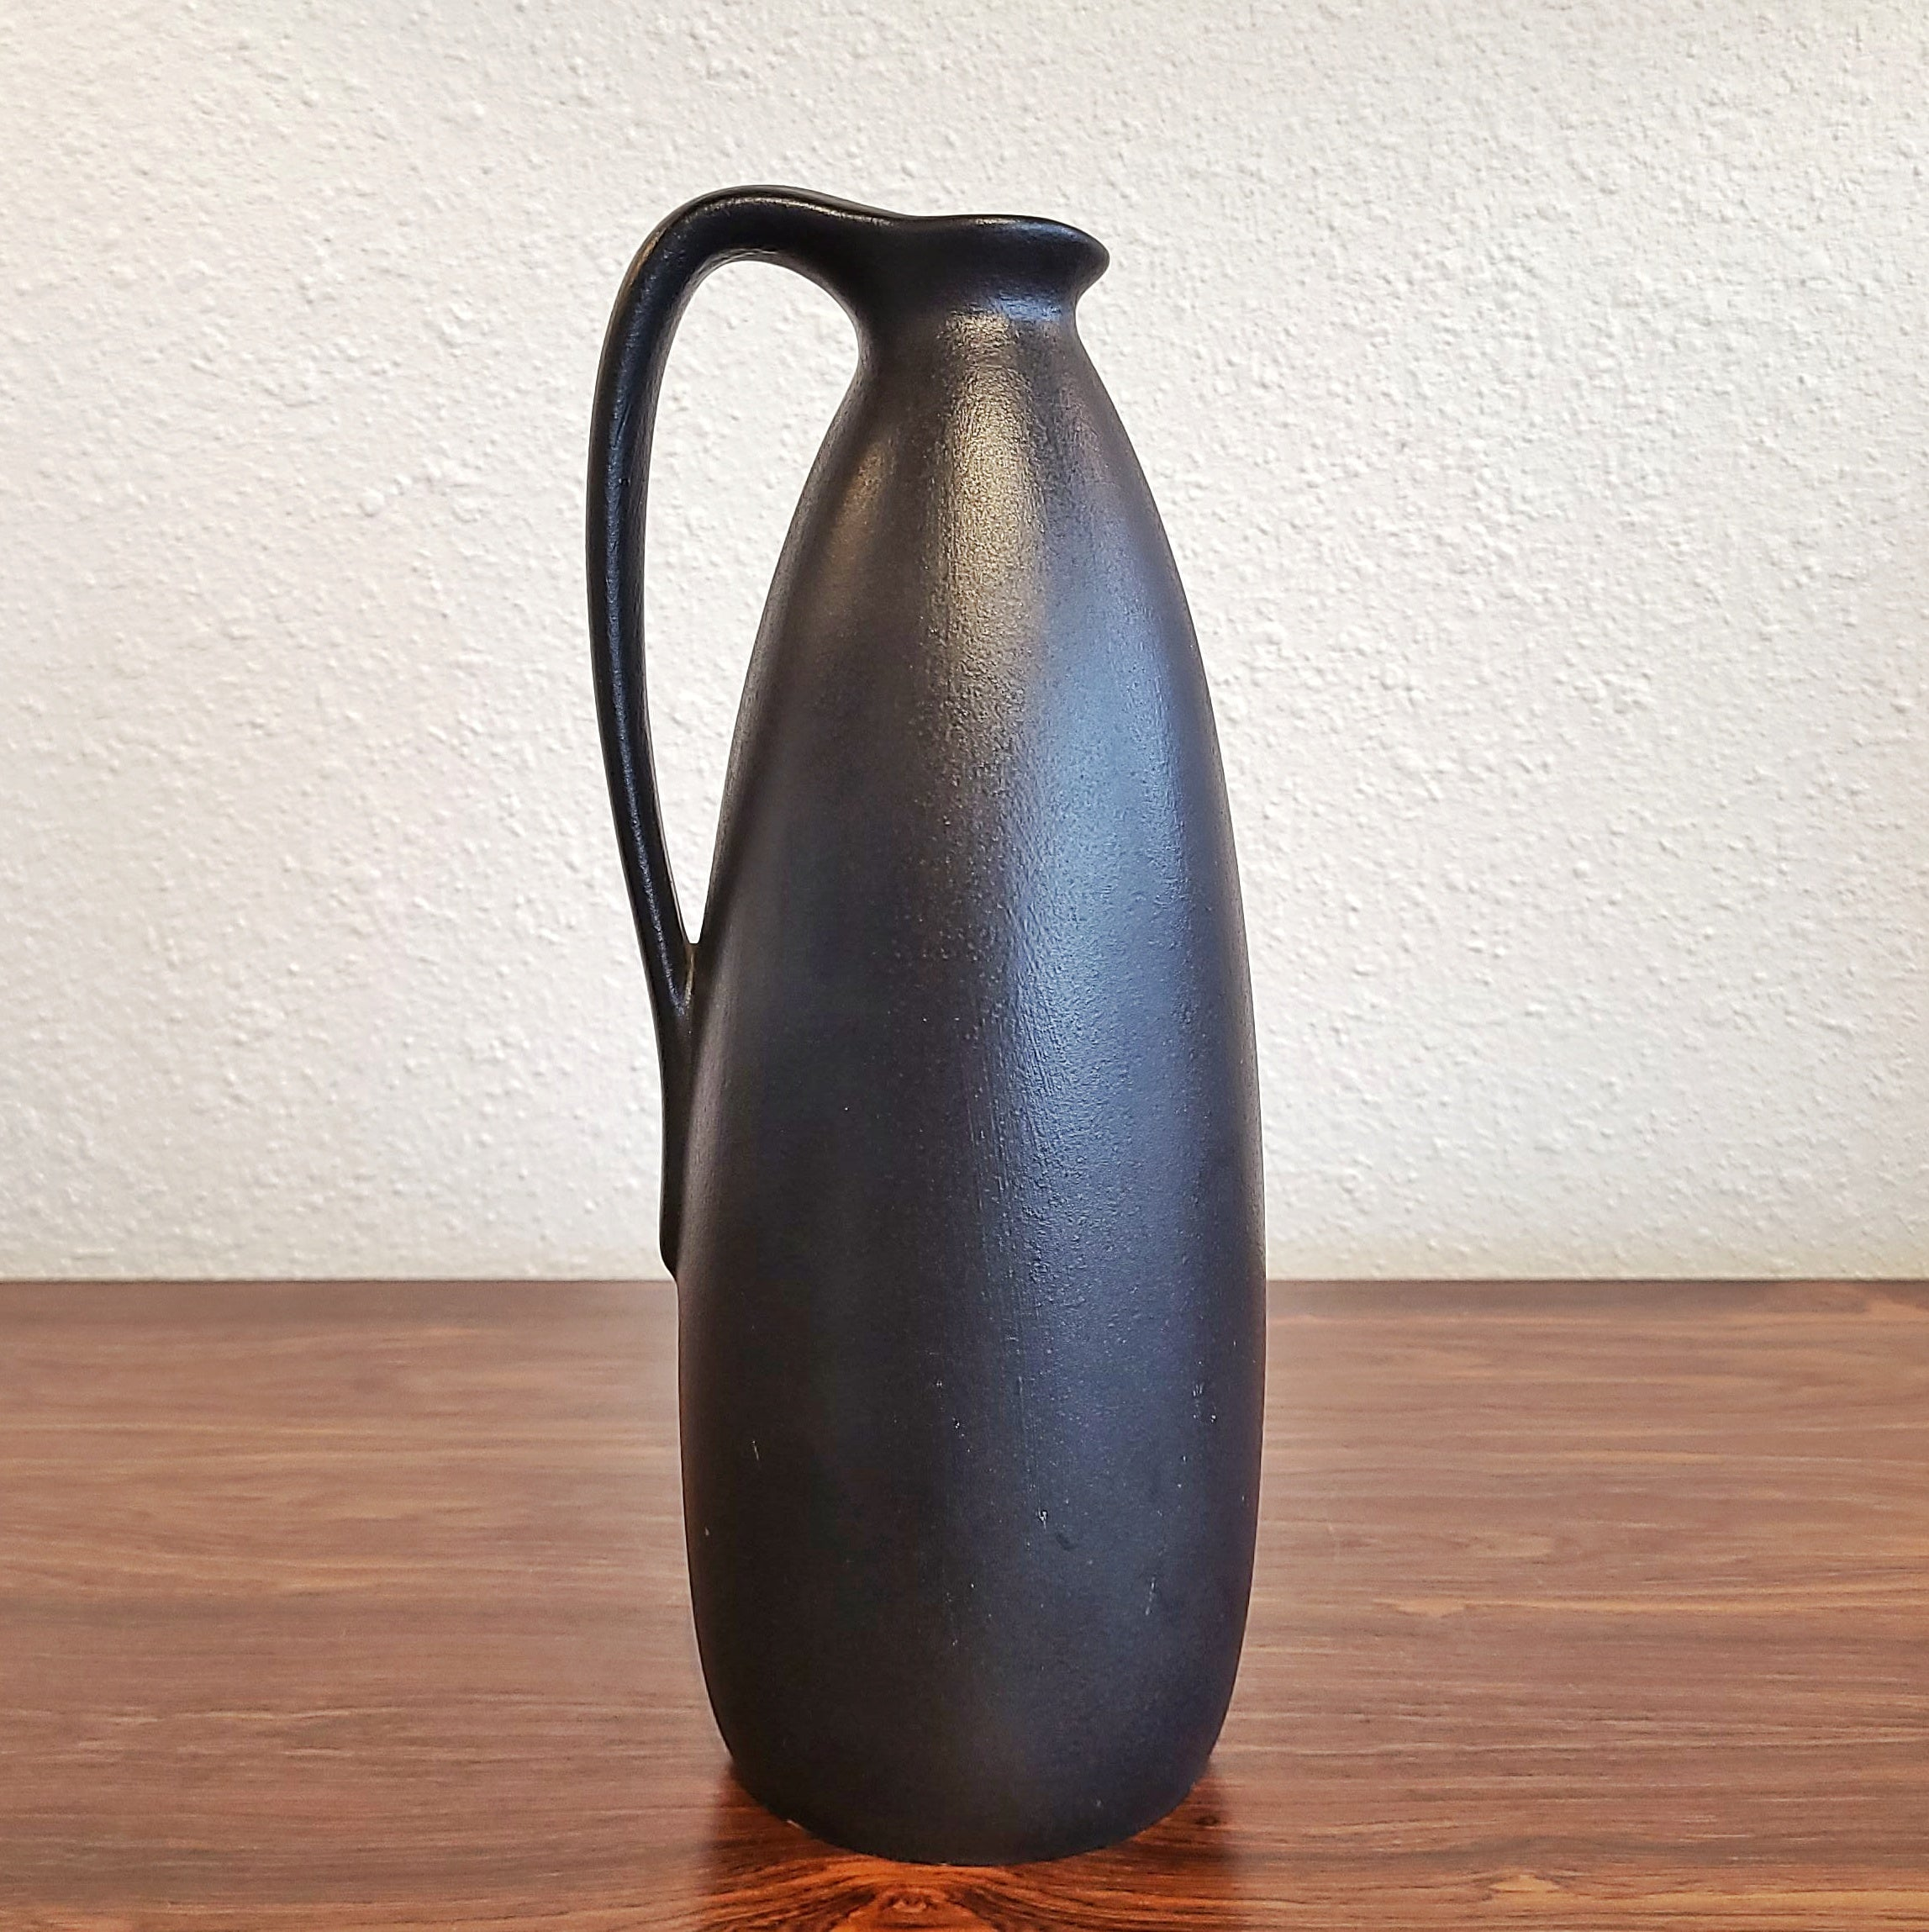 RUSCHA KERAMIK 'JAPAN' DECOR HANDLE VASE Nr. 314/2